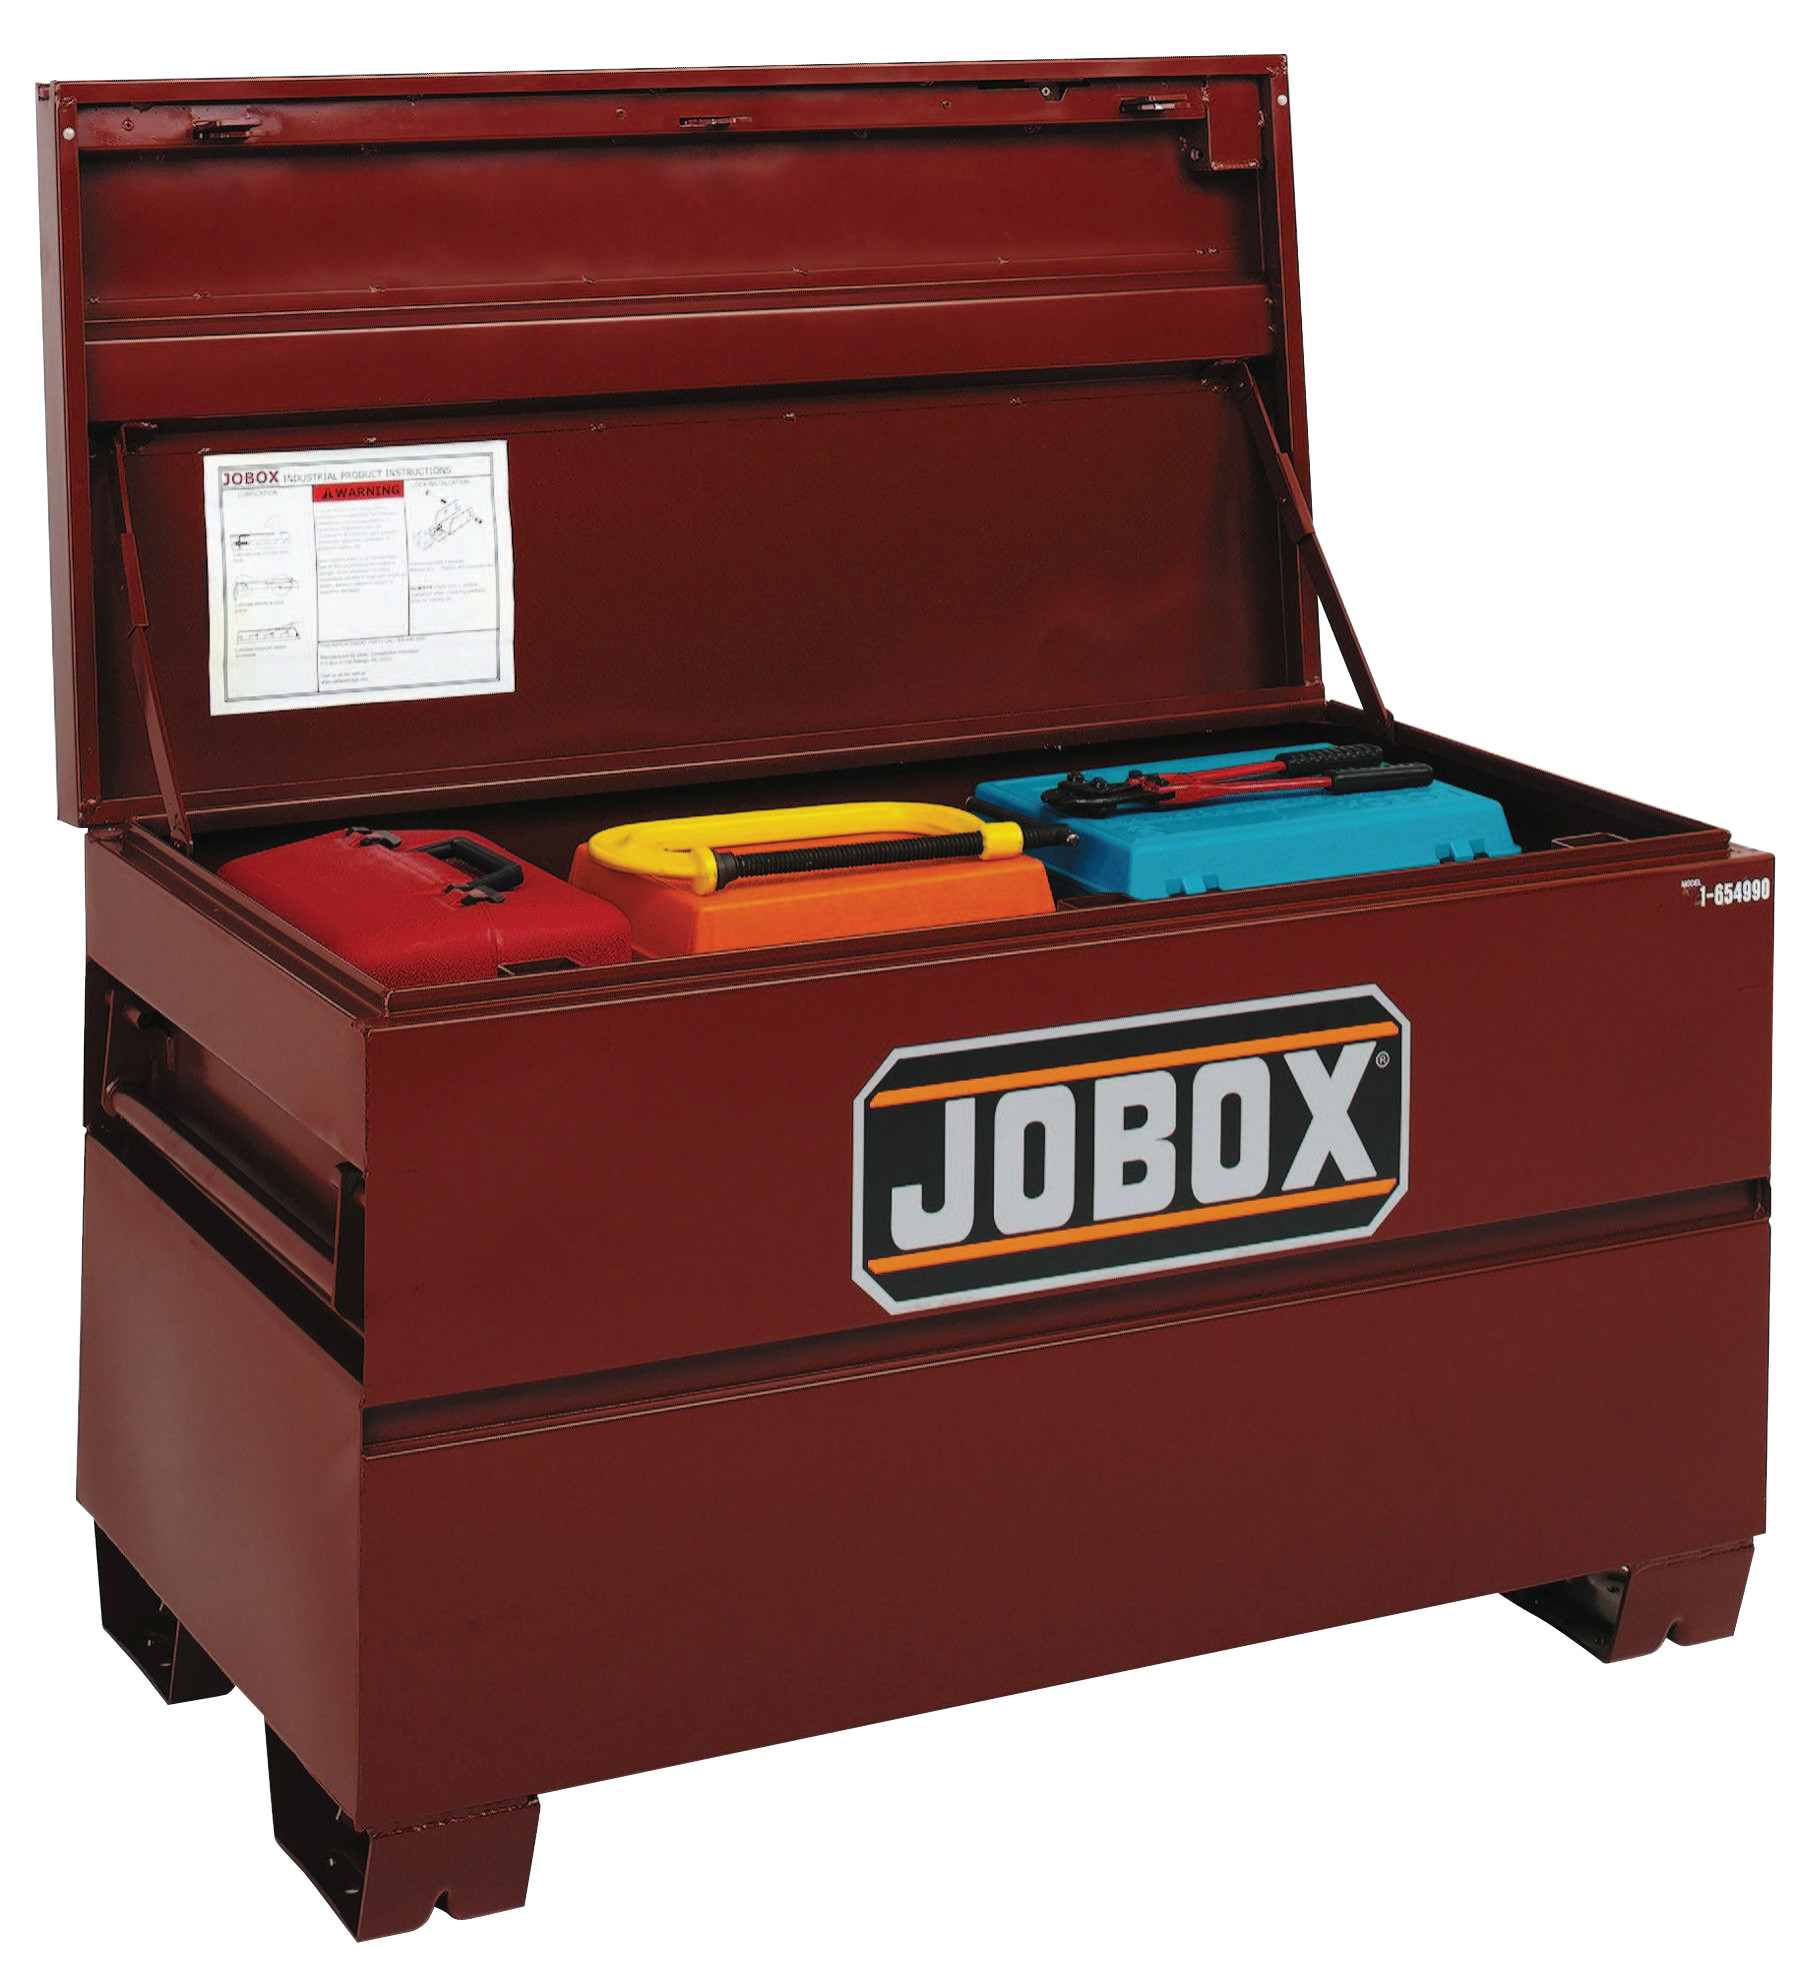 Jobox On-Site Chests, 48 in X 30 in X 33 3/8 in